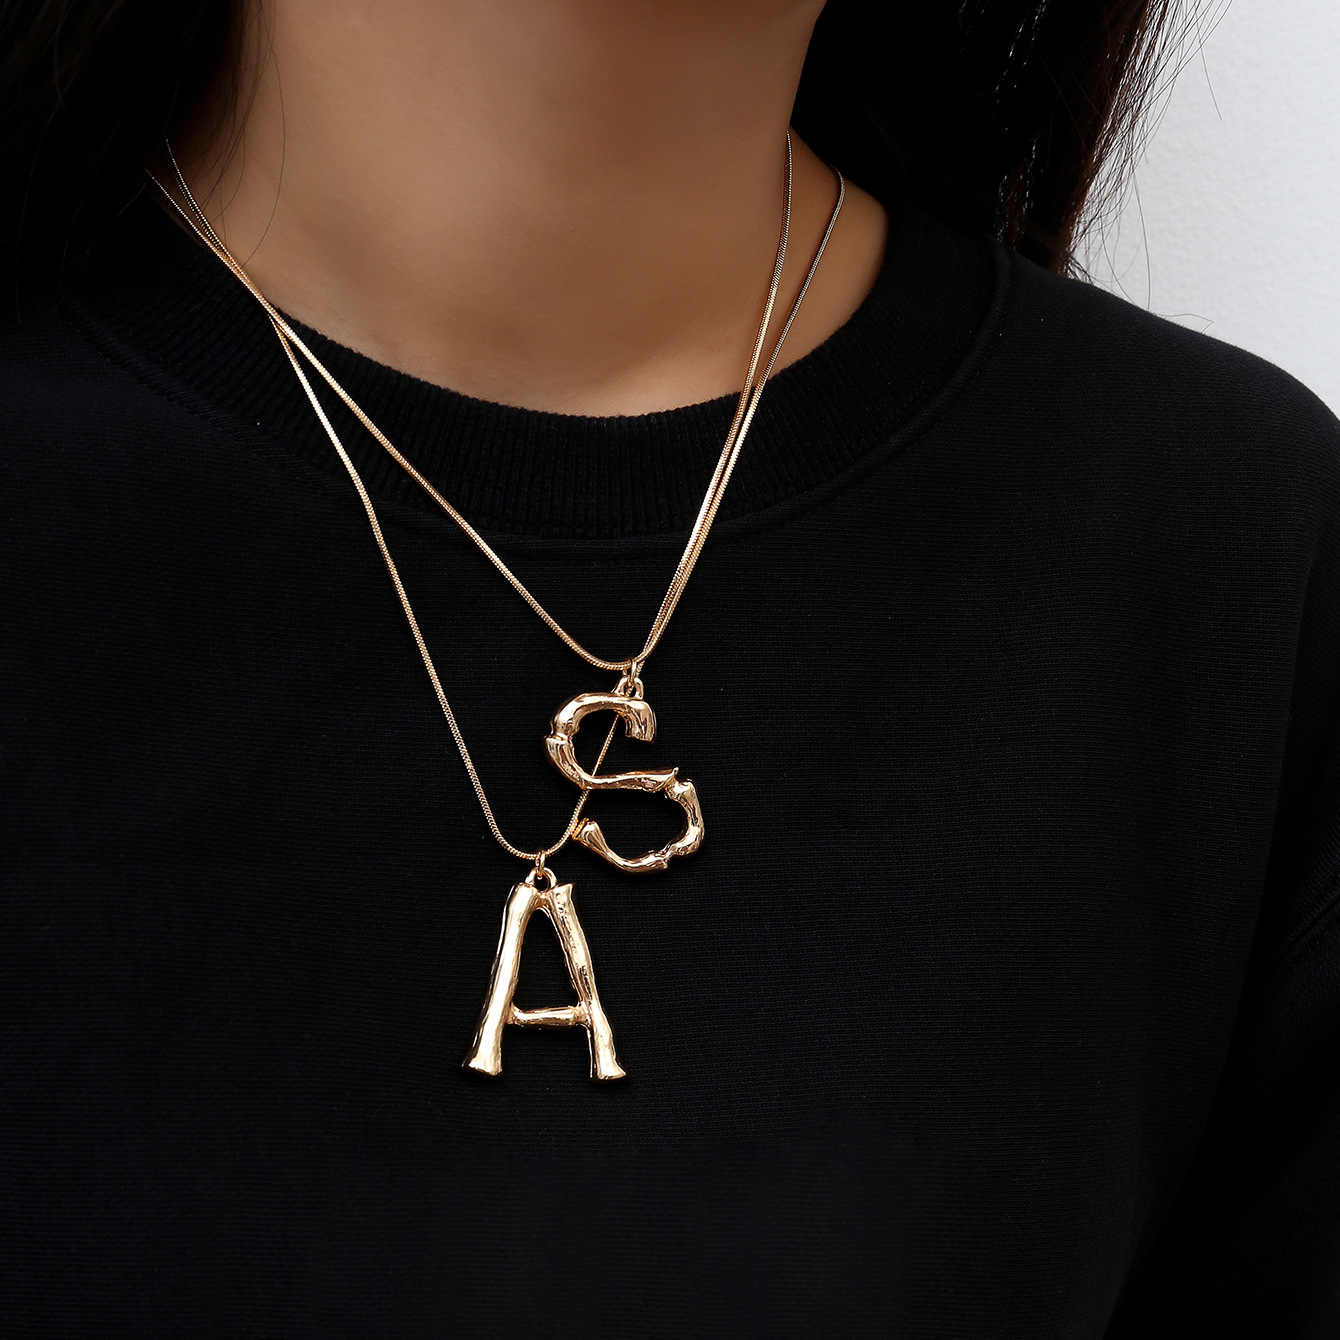 UOTOP 2019 New Alphabet Initial Letter Pendant Necklace Female Gold Silver Color Snake Chain Choker Collar Necklaces for Women